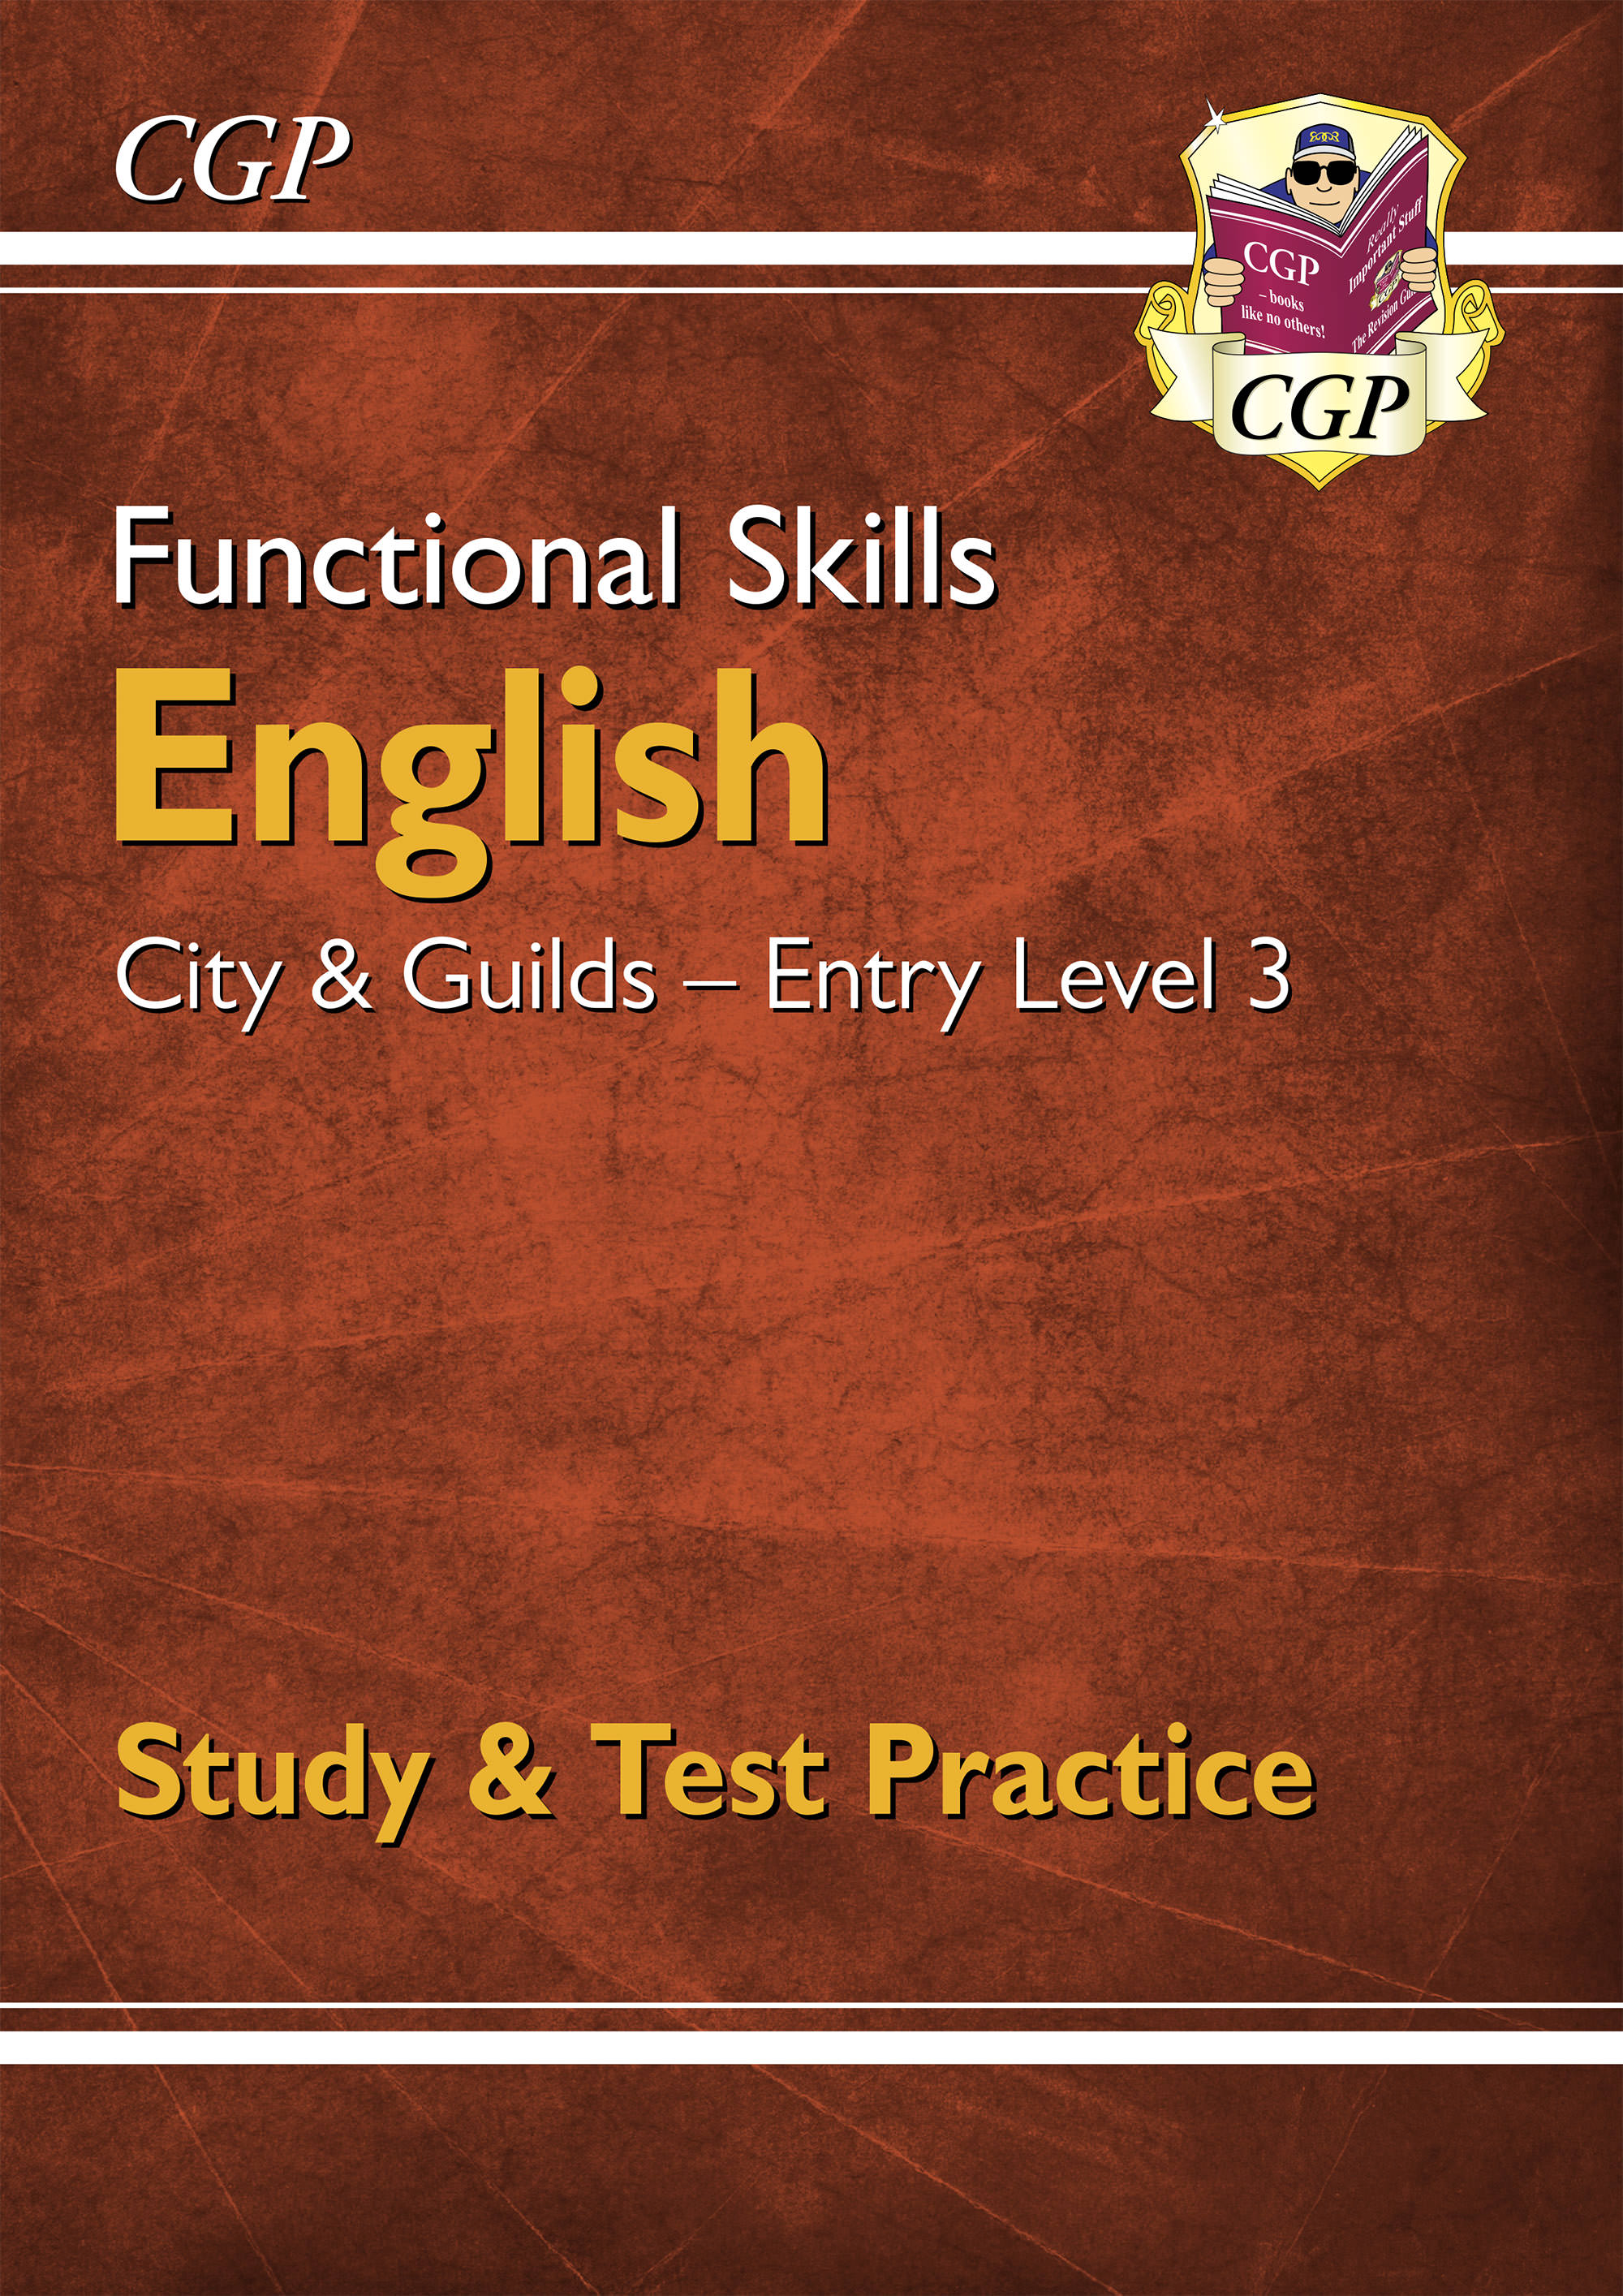 E3CGSRA1DK - New Functional Skills English: City & Guilds Entry Level 3 - Study & Test Practice for